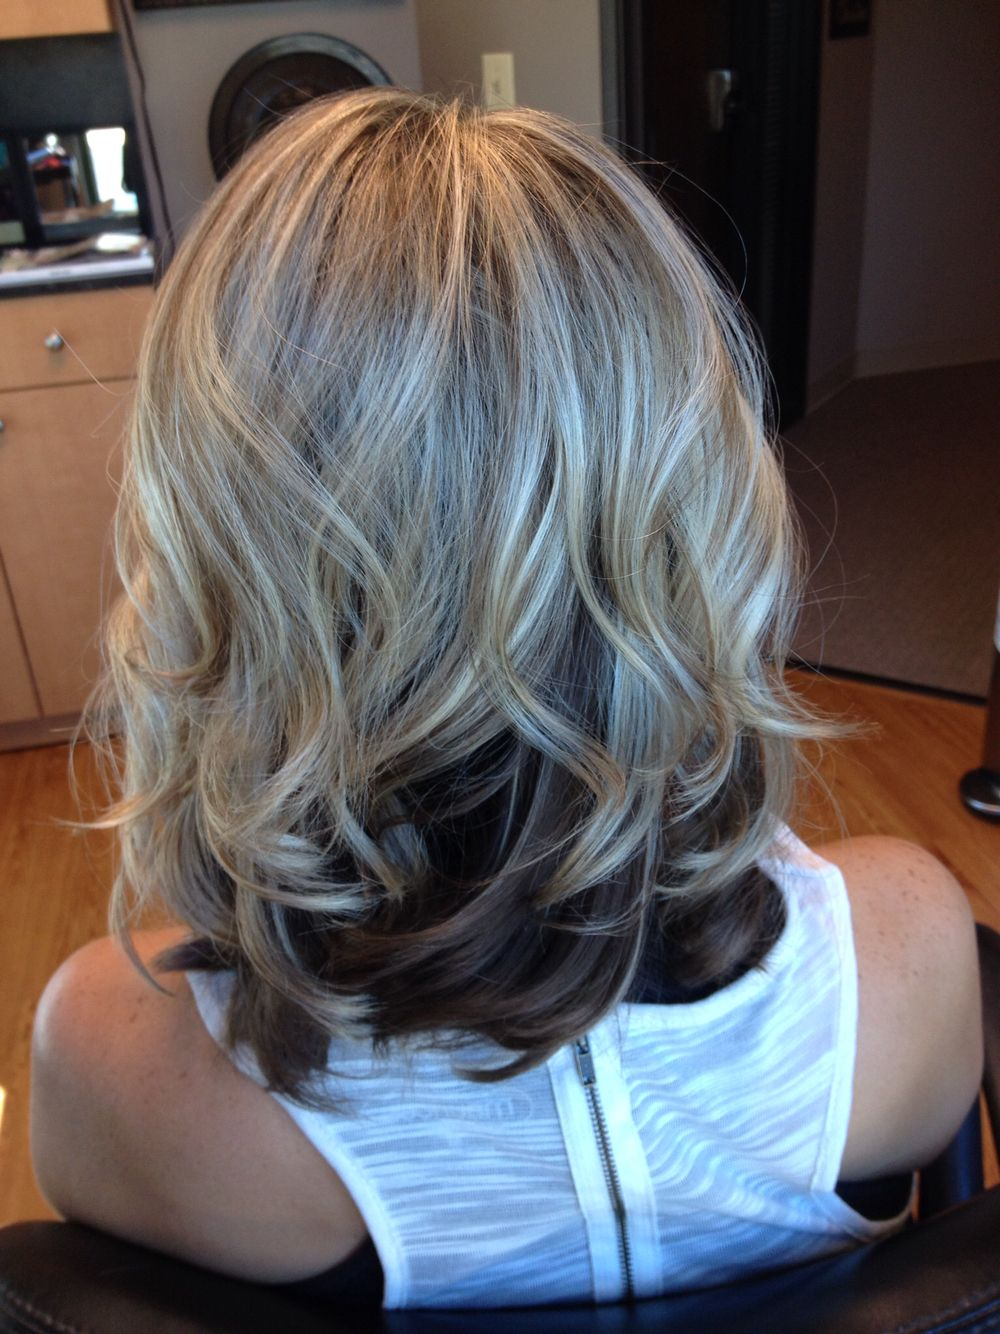 Pin On Hair By Melissa Lobaito